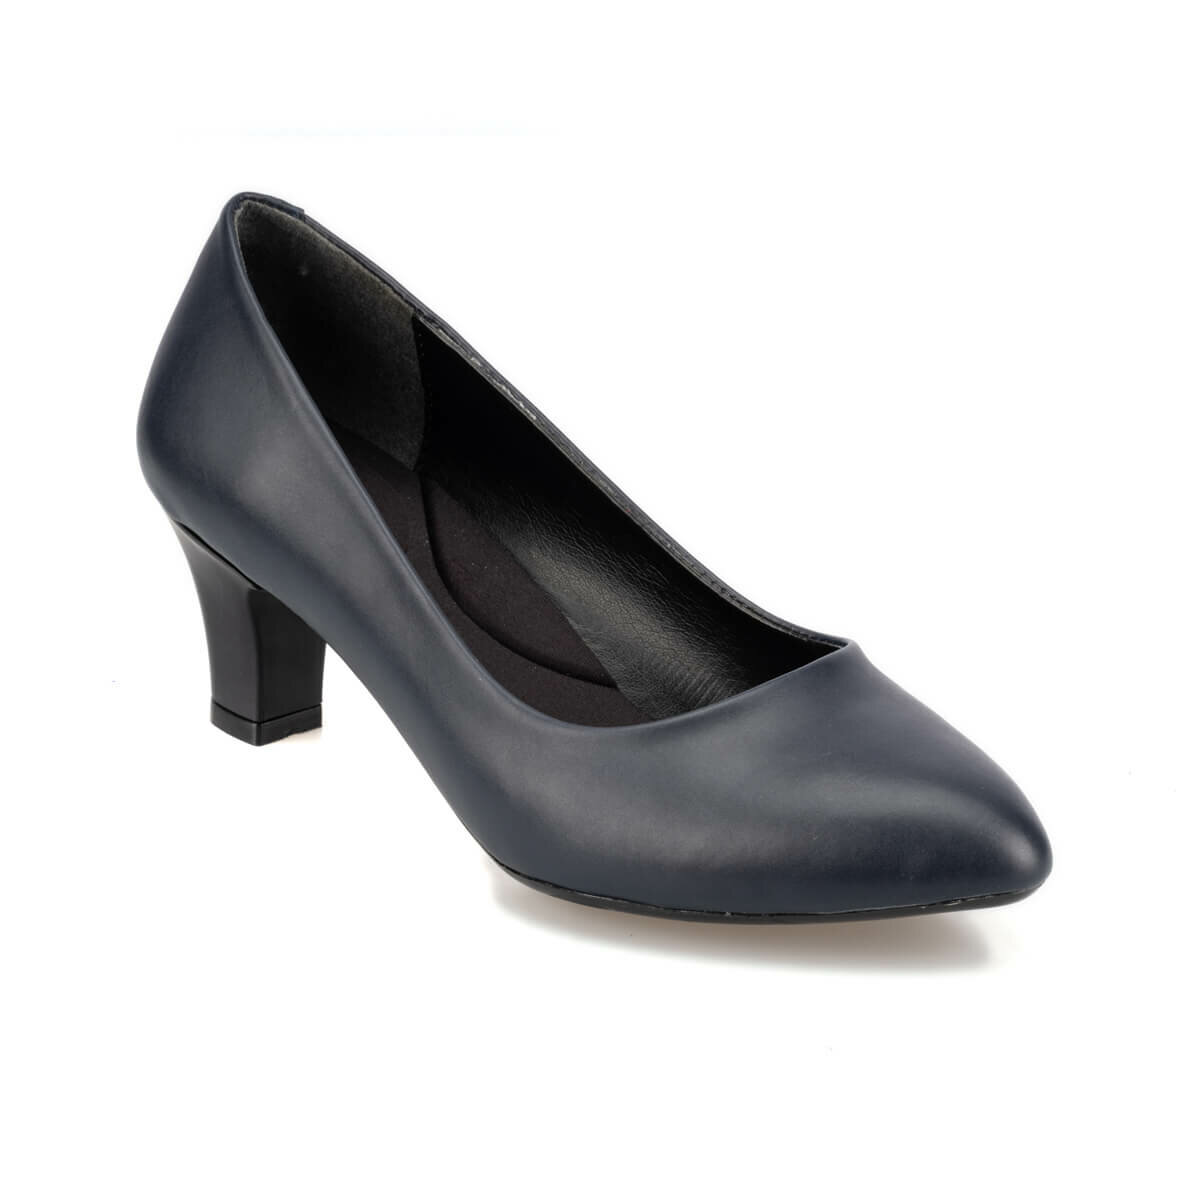 FLO 92.312092.Z Navy Blue Women 'S Shoes Polaris